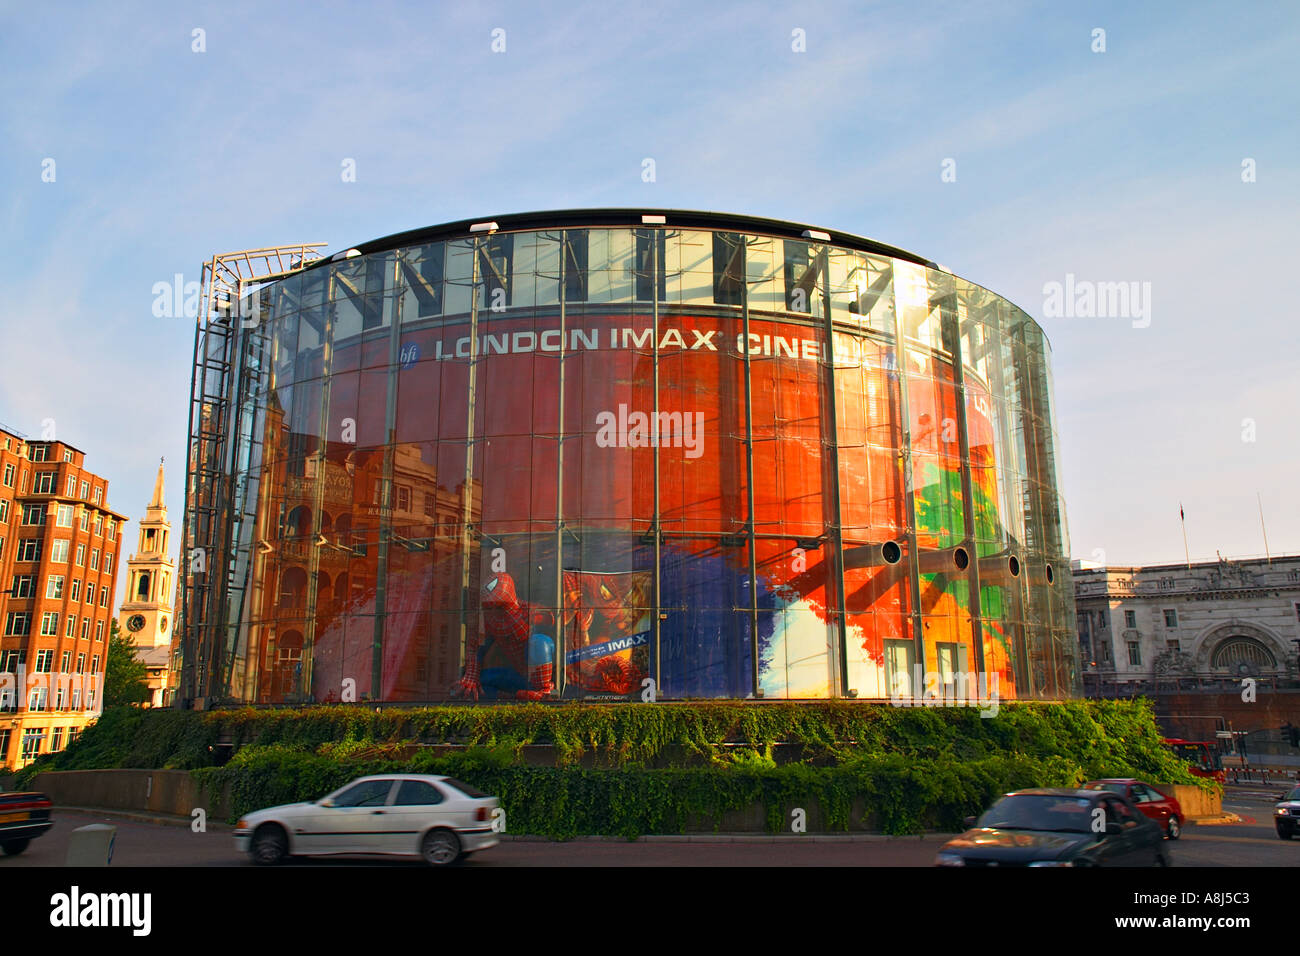 london imax cinema uk - Stock Image